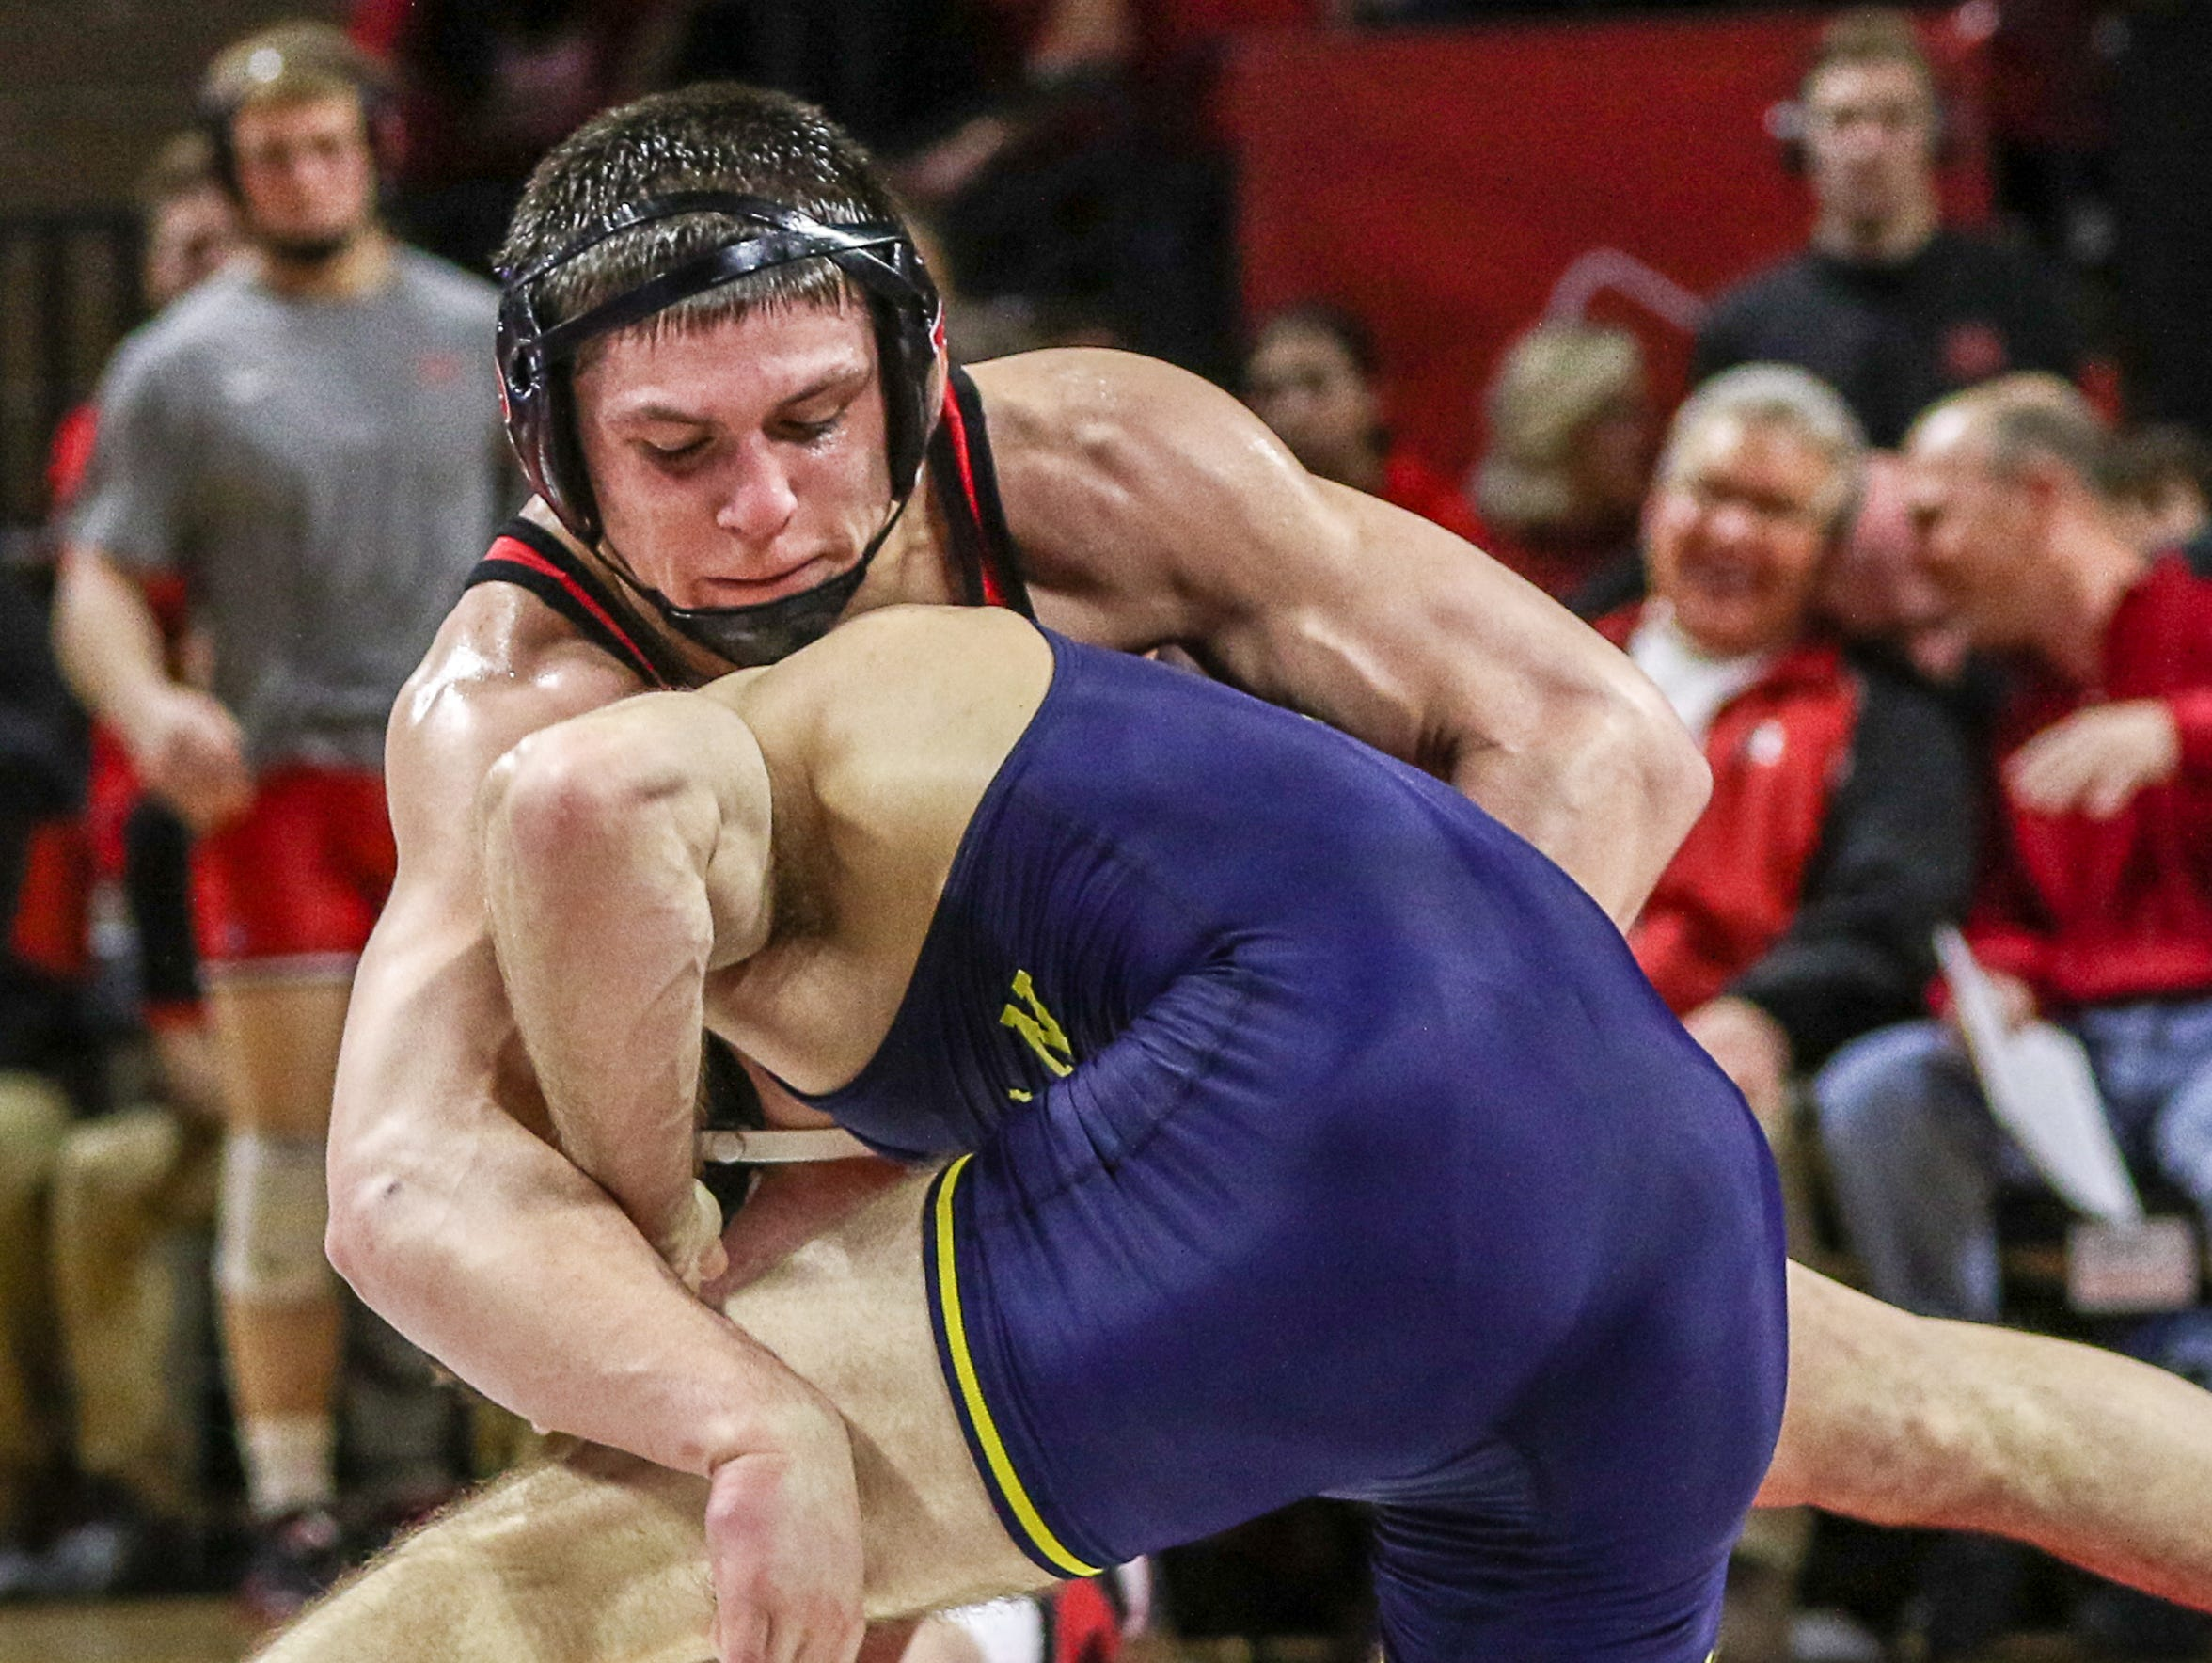 Rutgers wrestler Anthony Perrotti was an All-American